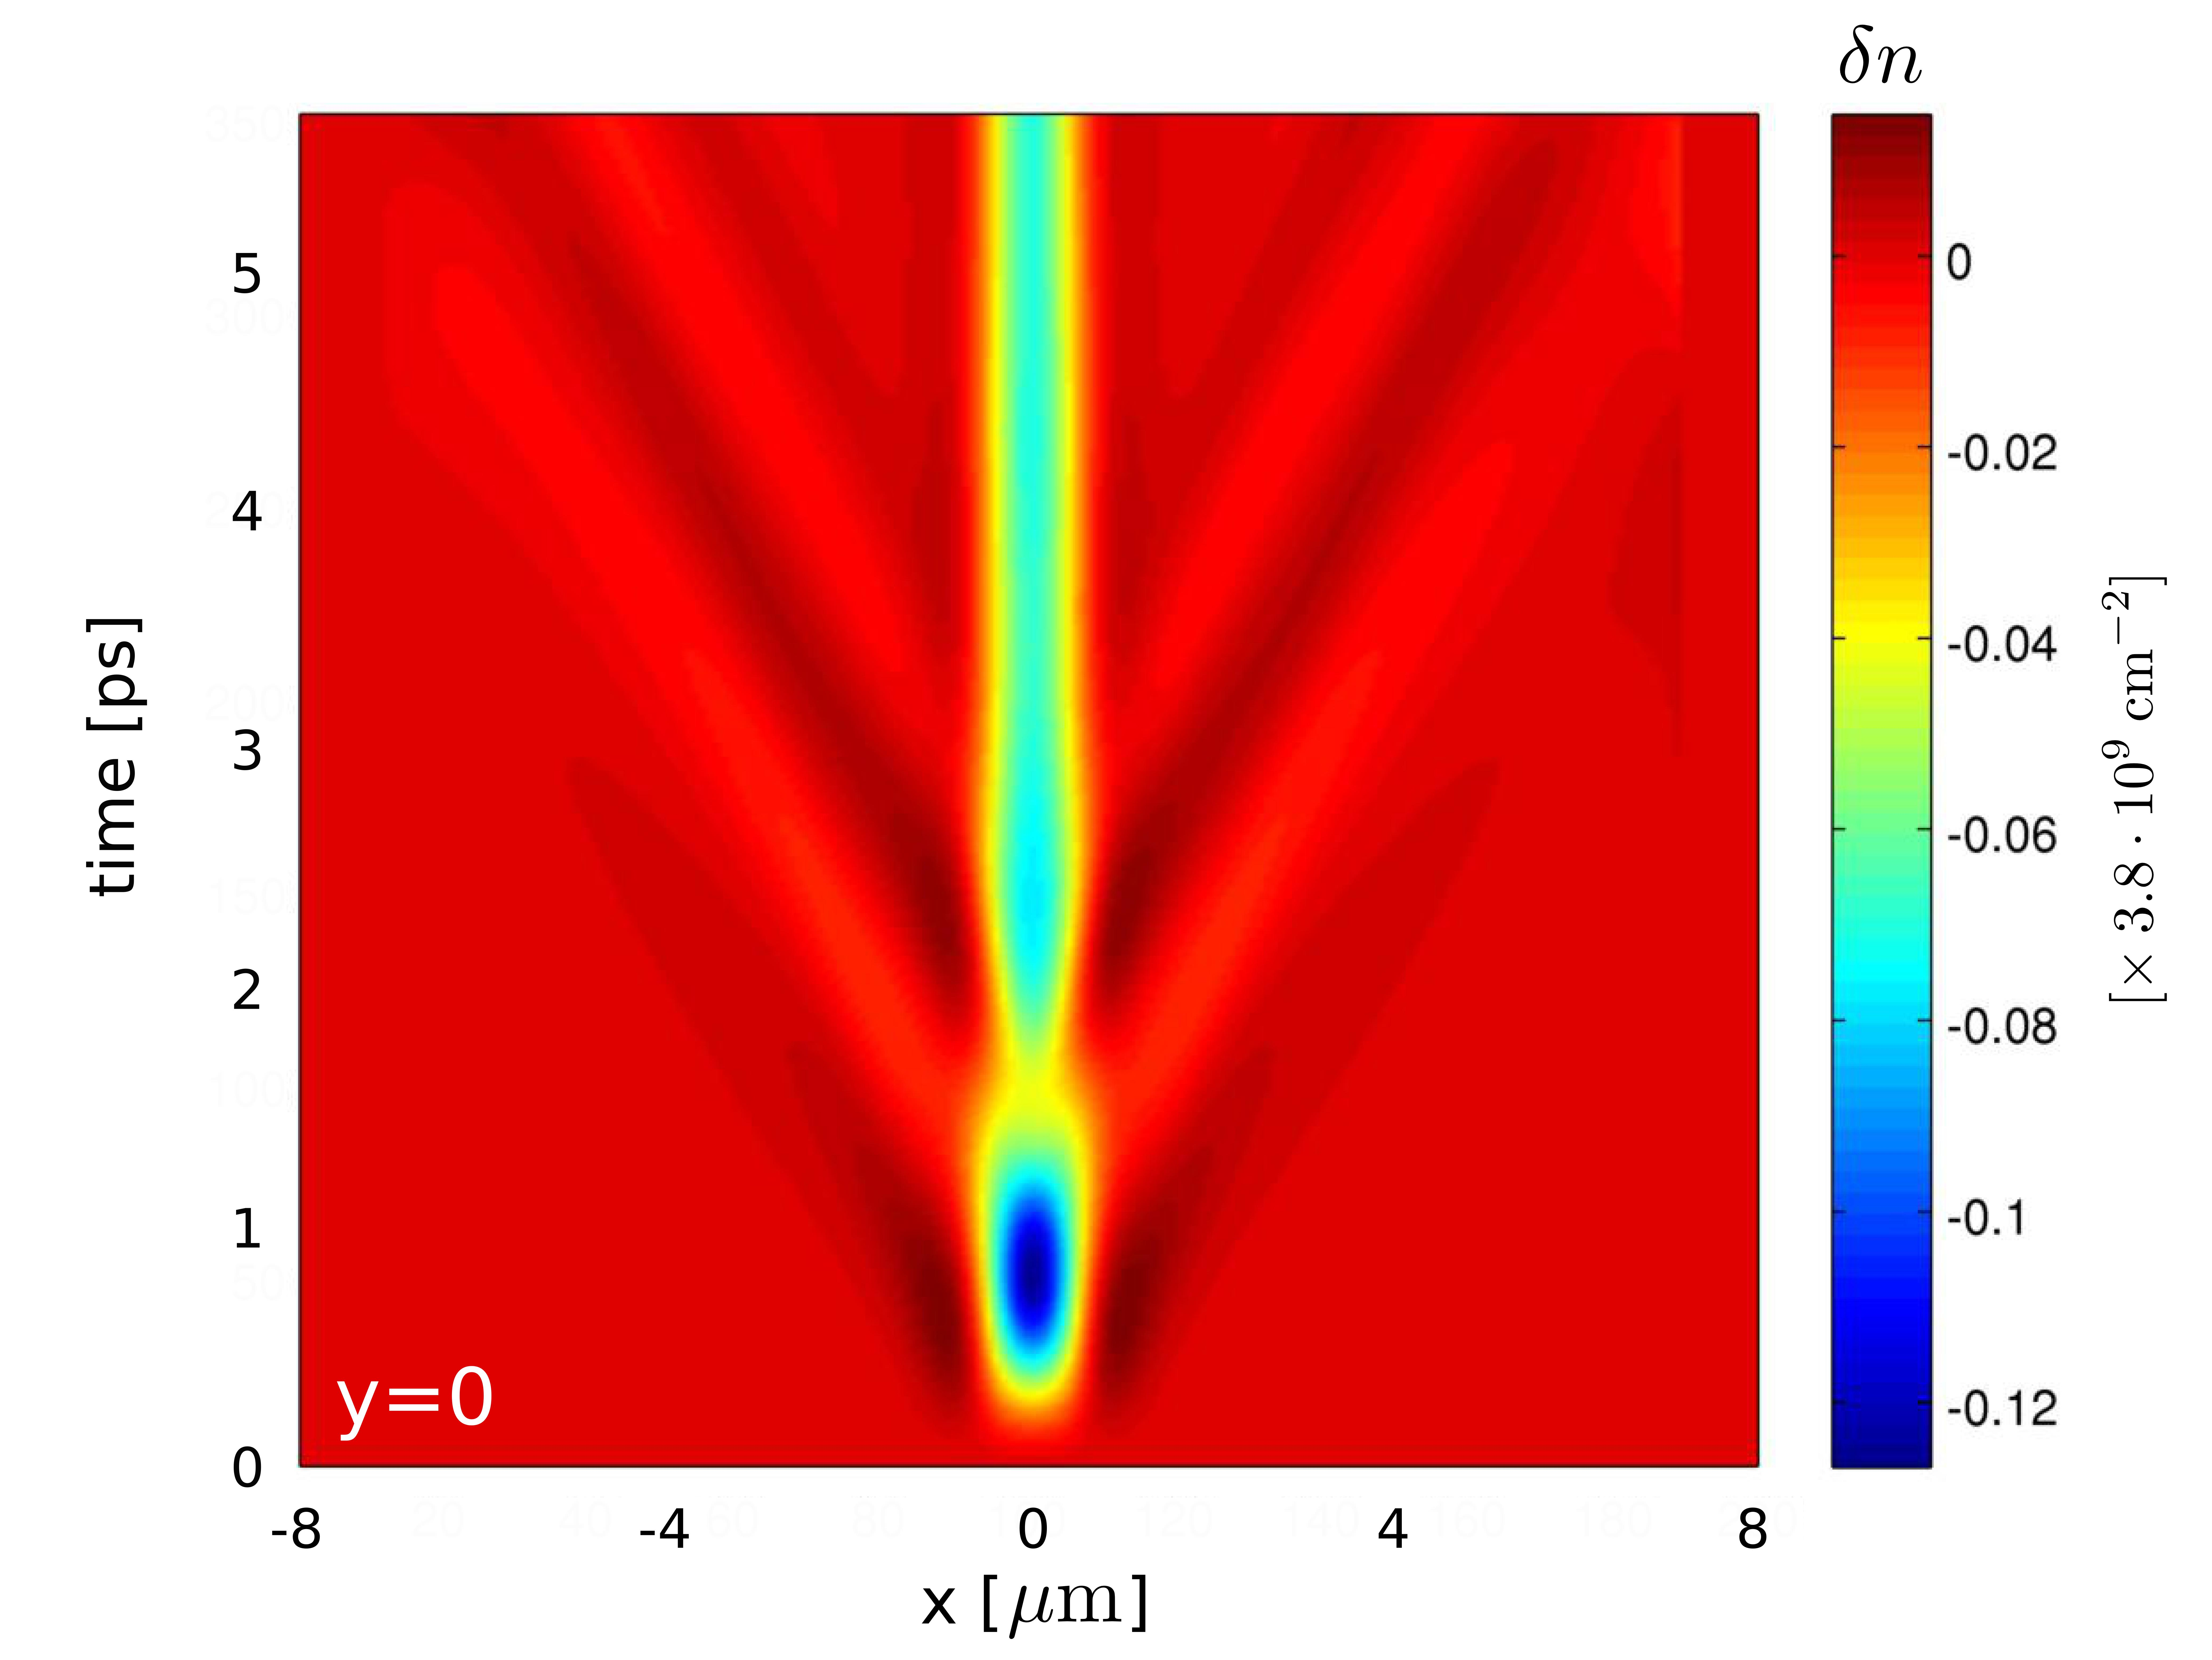 Hot spot relaxation. The color-map plot shows the time evolution of the charge density as a function of